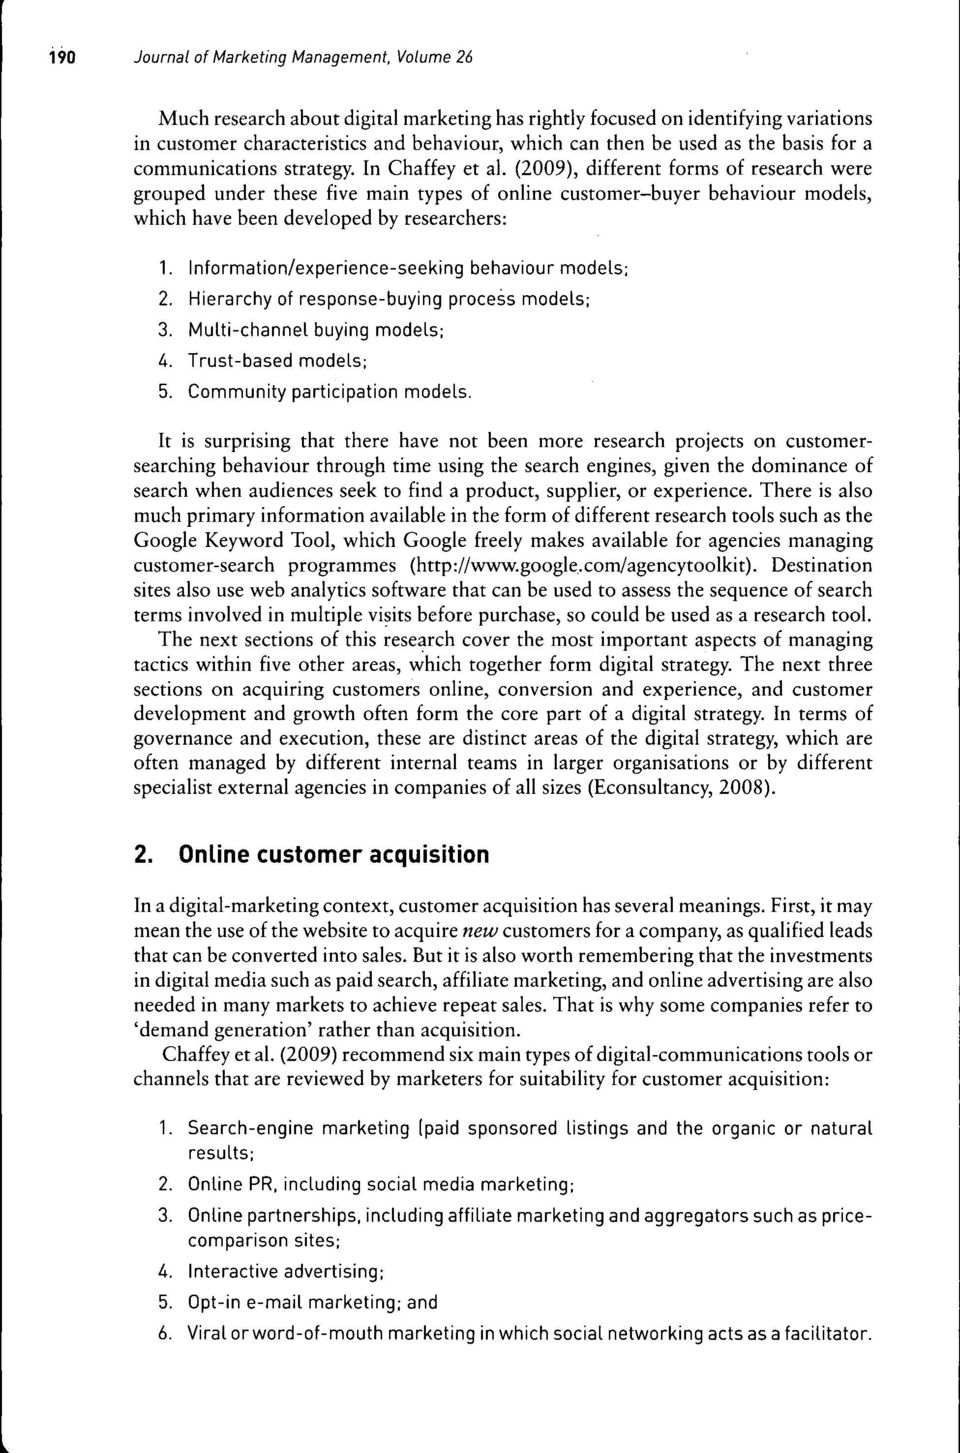 (2009), different forms of research were grouped under these five main types of online customer-buyer behaviour models, which have been developed by researchers: 1.